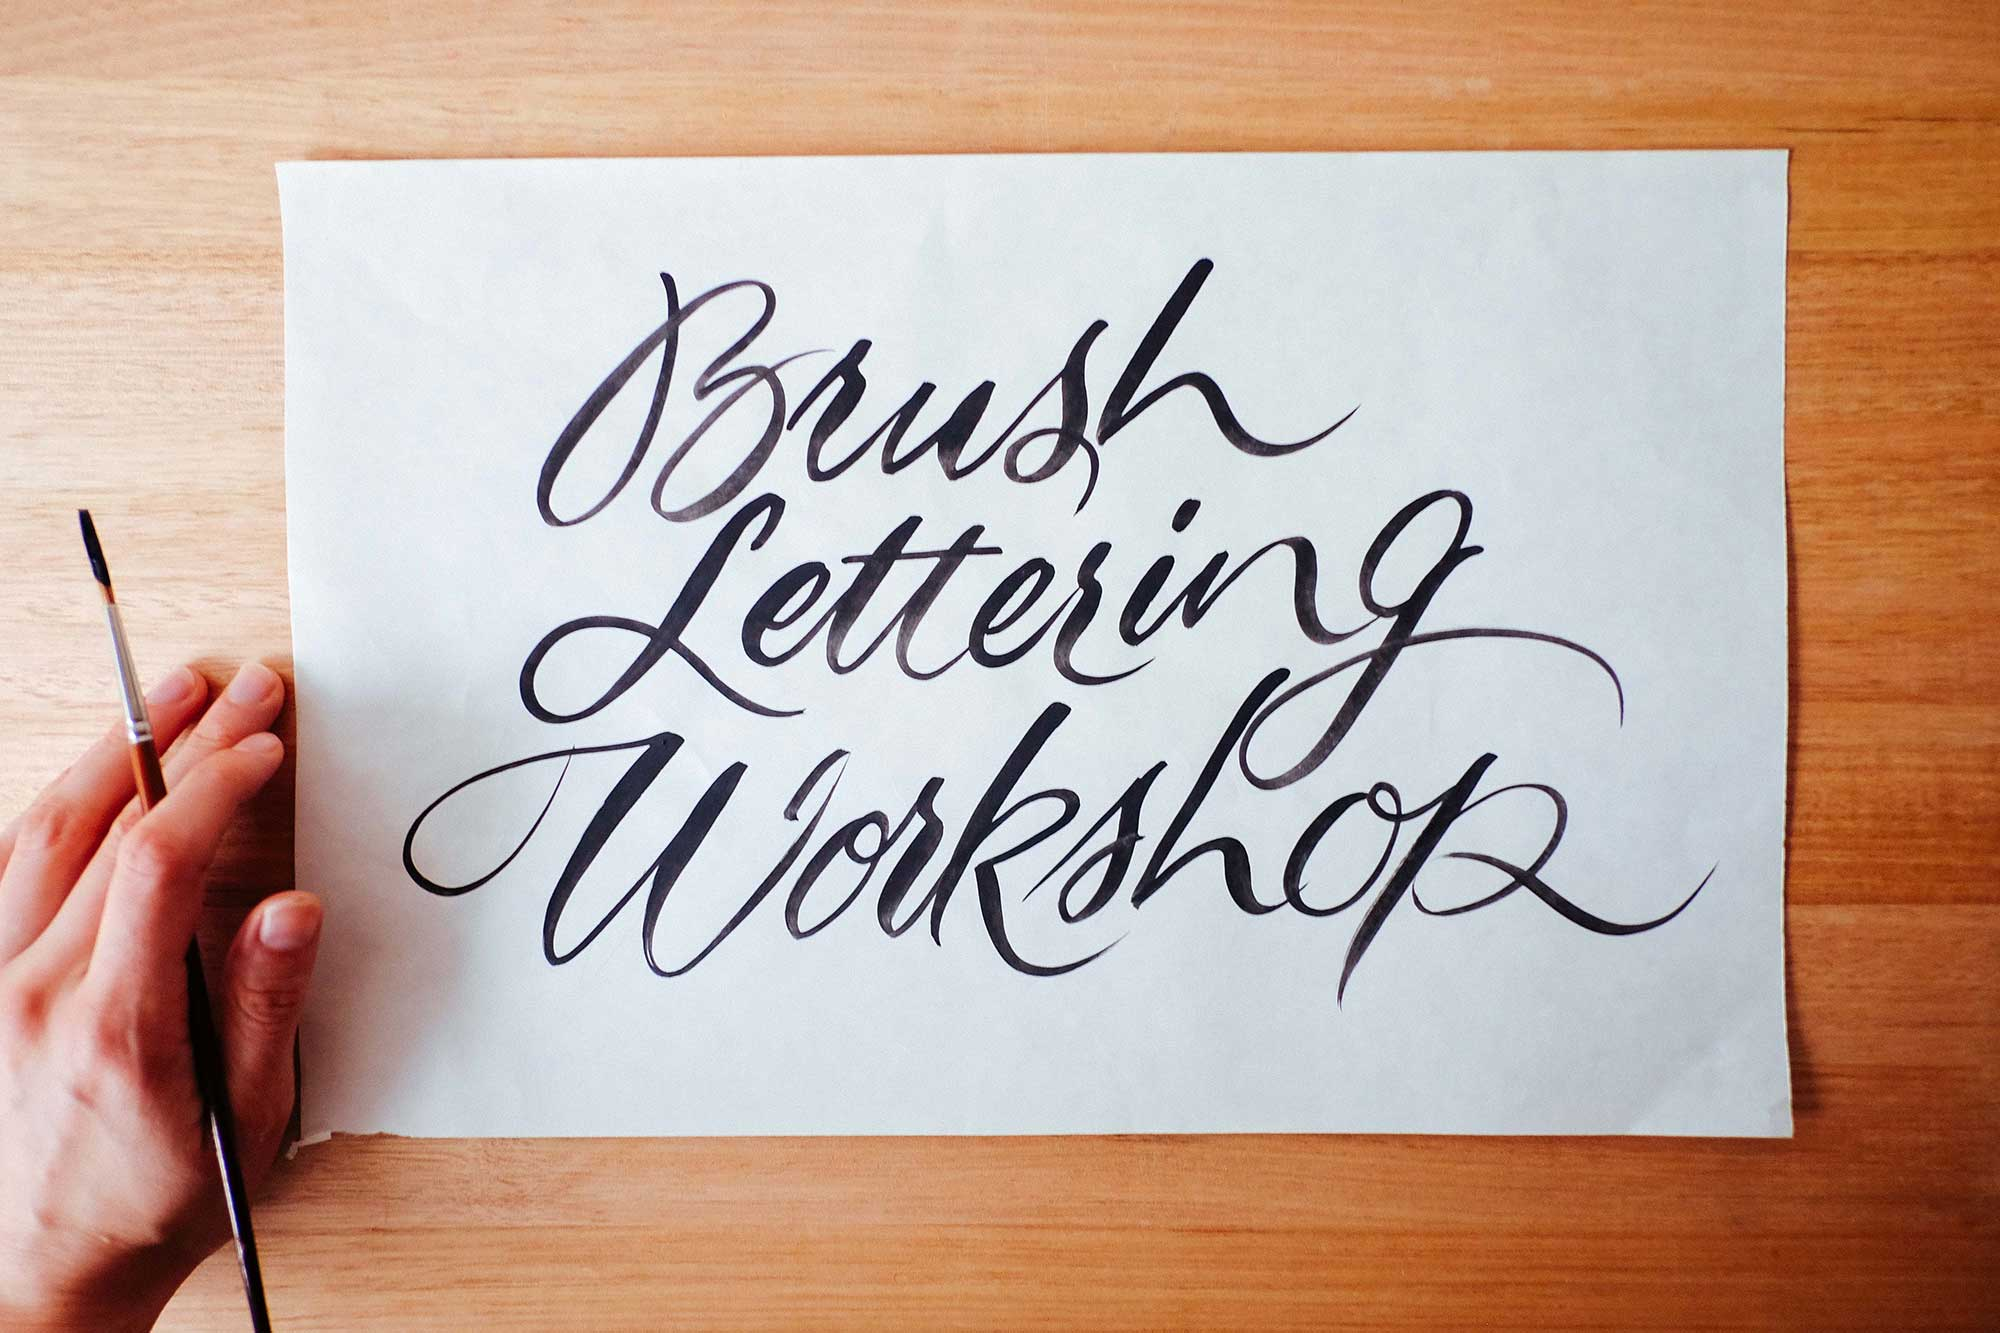 Brush Lettering Workshop, Melbourne 18-19th July 2020